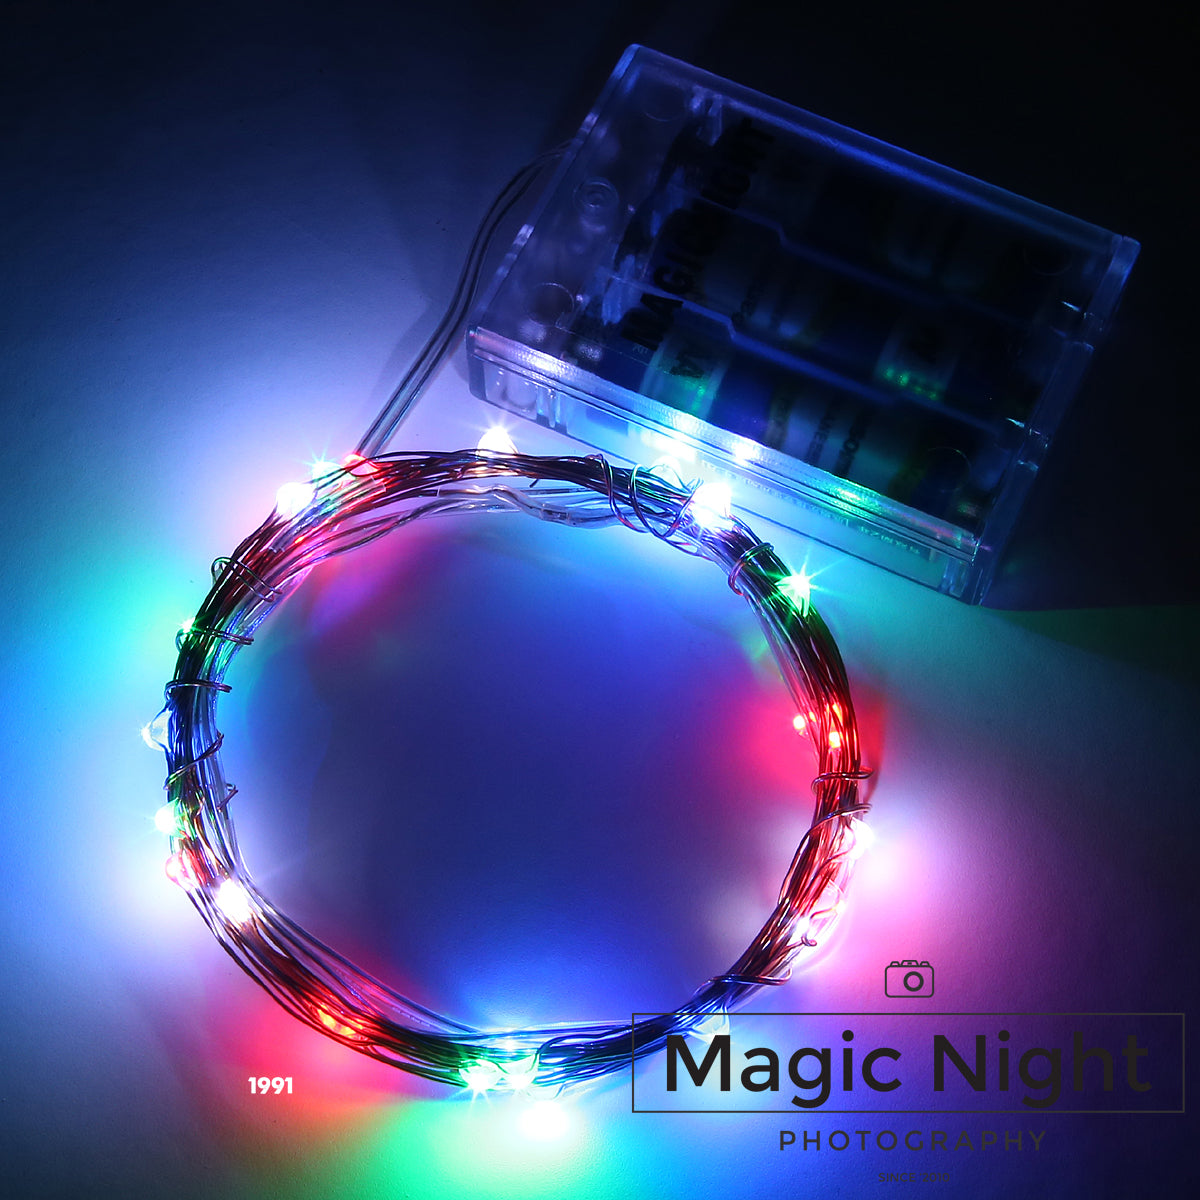 Magicnight battery powered operated led string starry light 30 leds magicnight battery powered operated led string starry light 30 leds mozeypictures Images